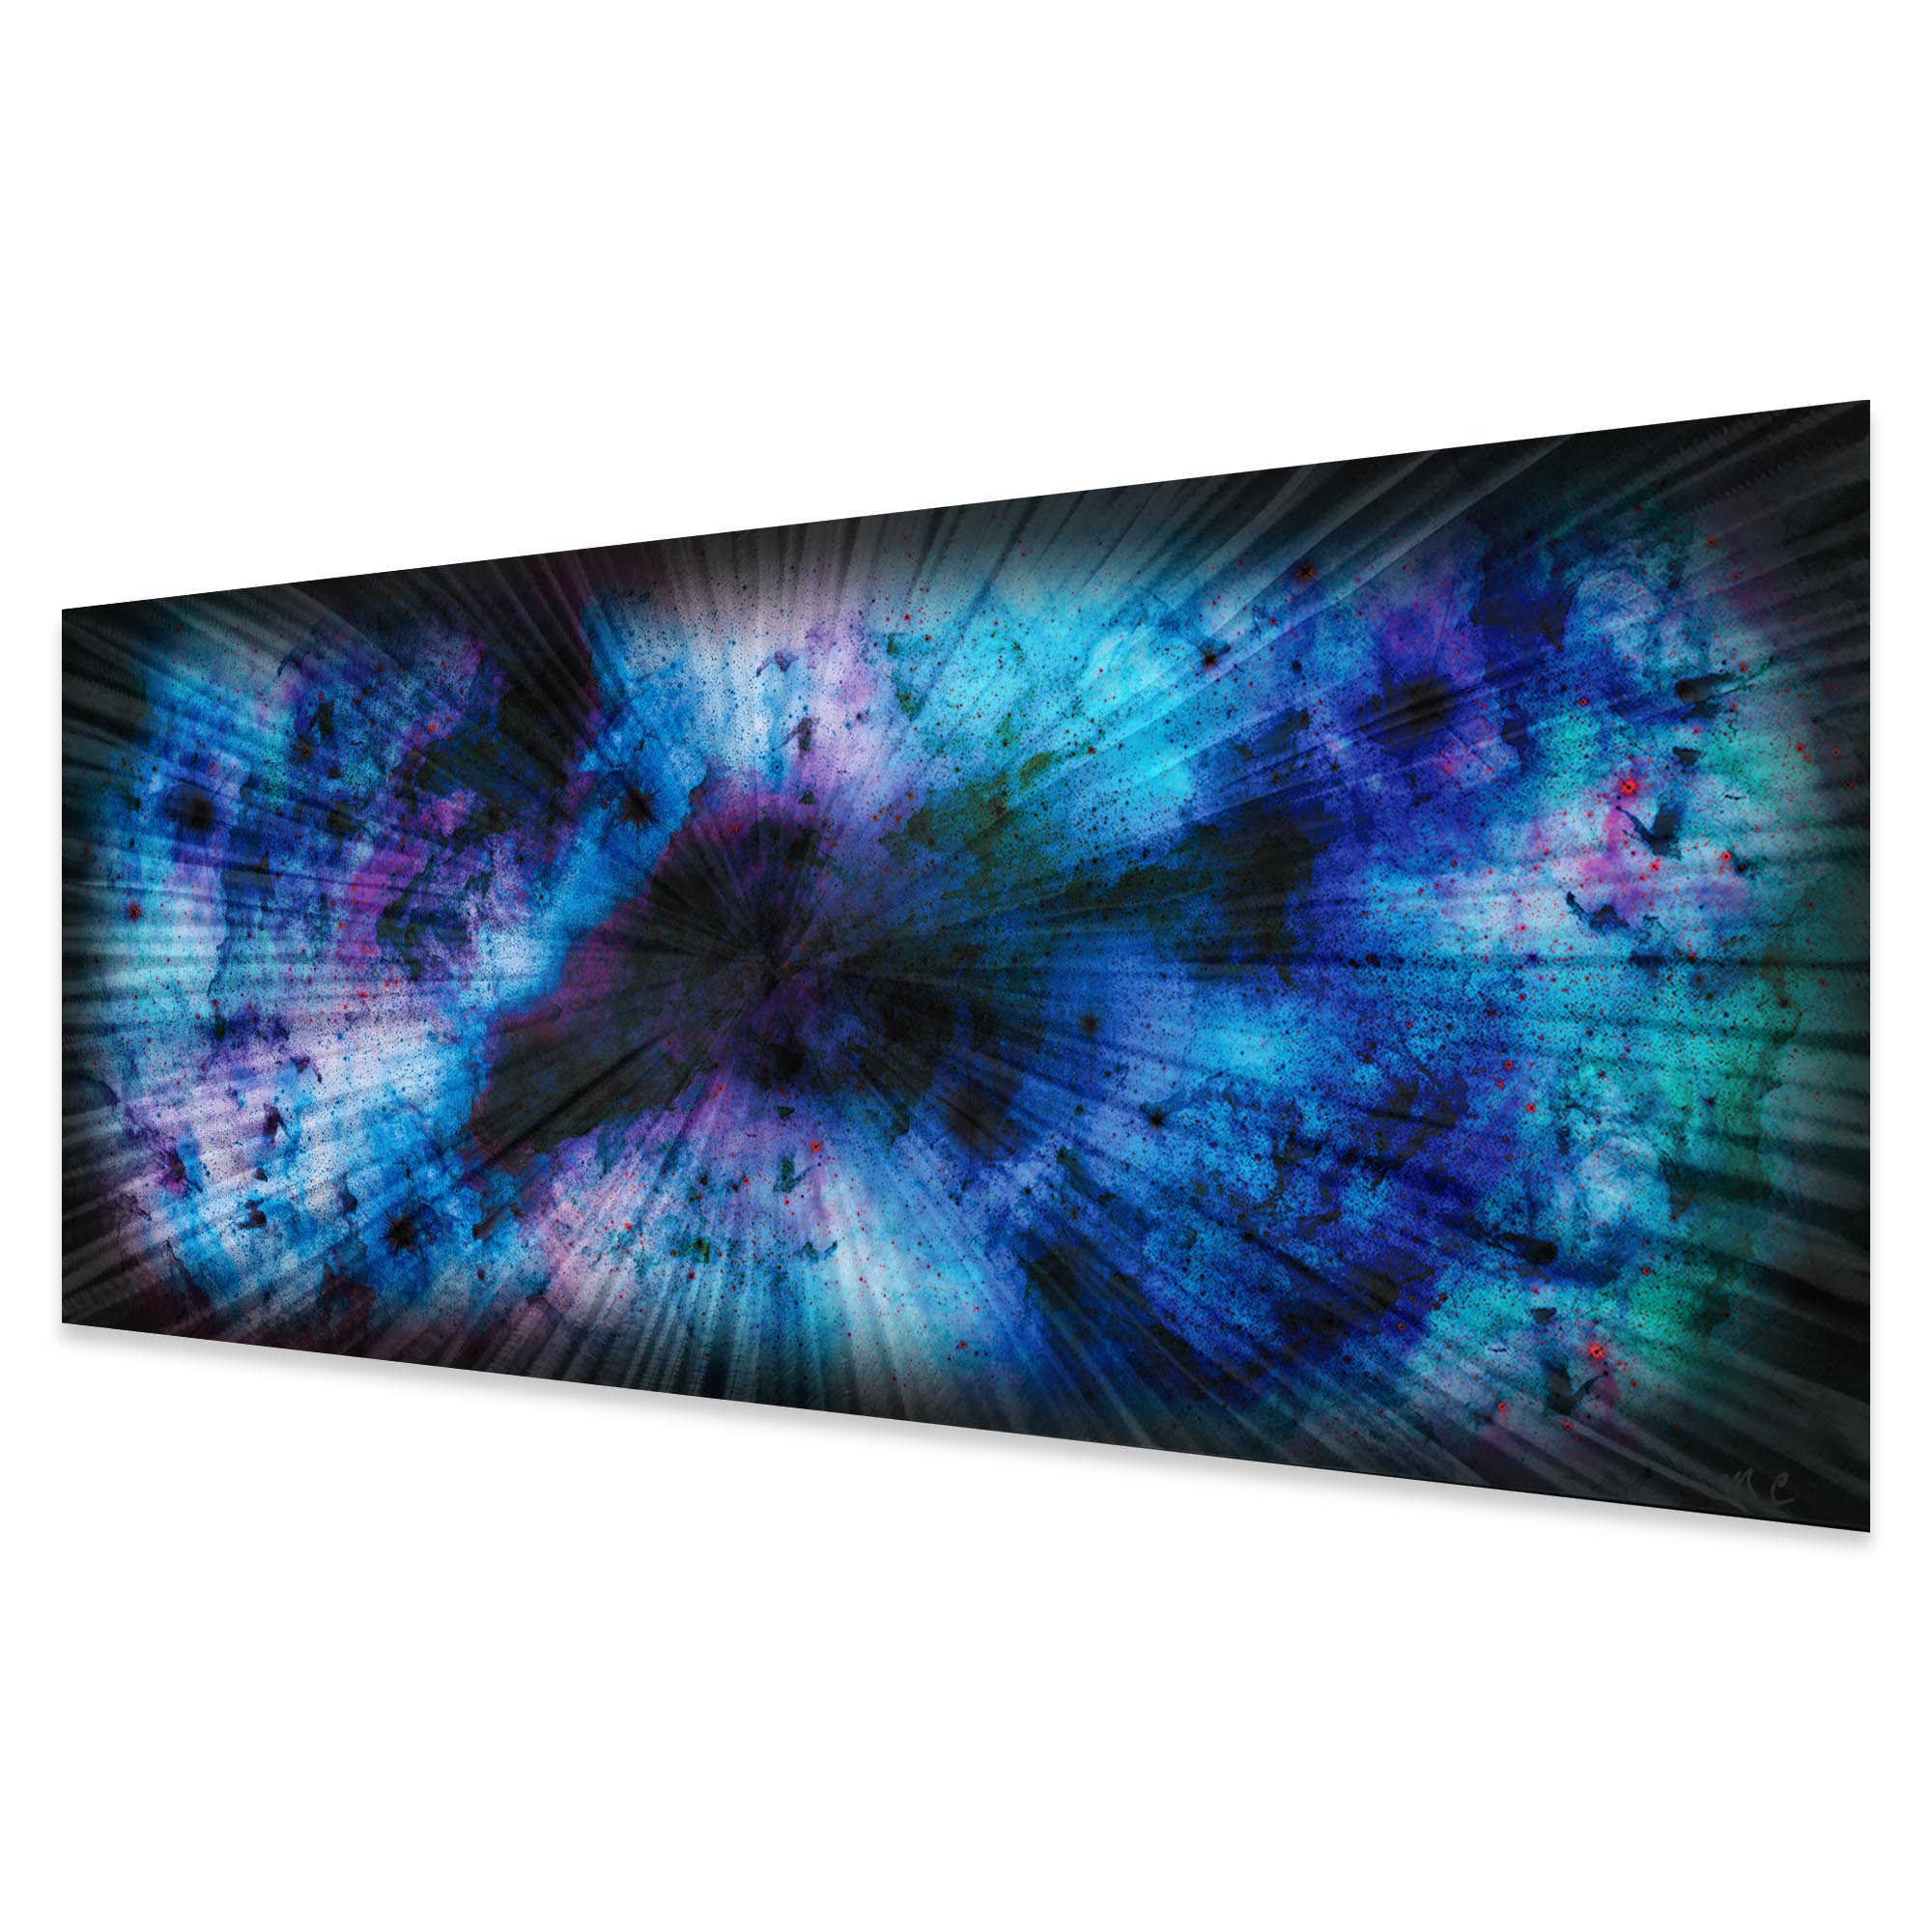 Blue Nebula by Helena Martin - Original Abstract Art on Ground and Colored Metal - Image 2